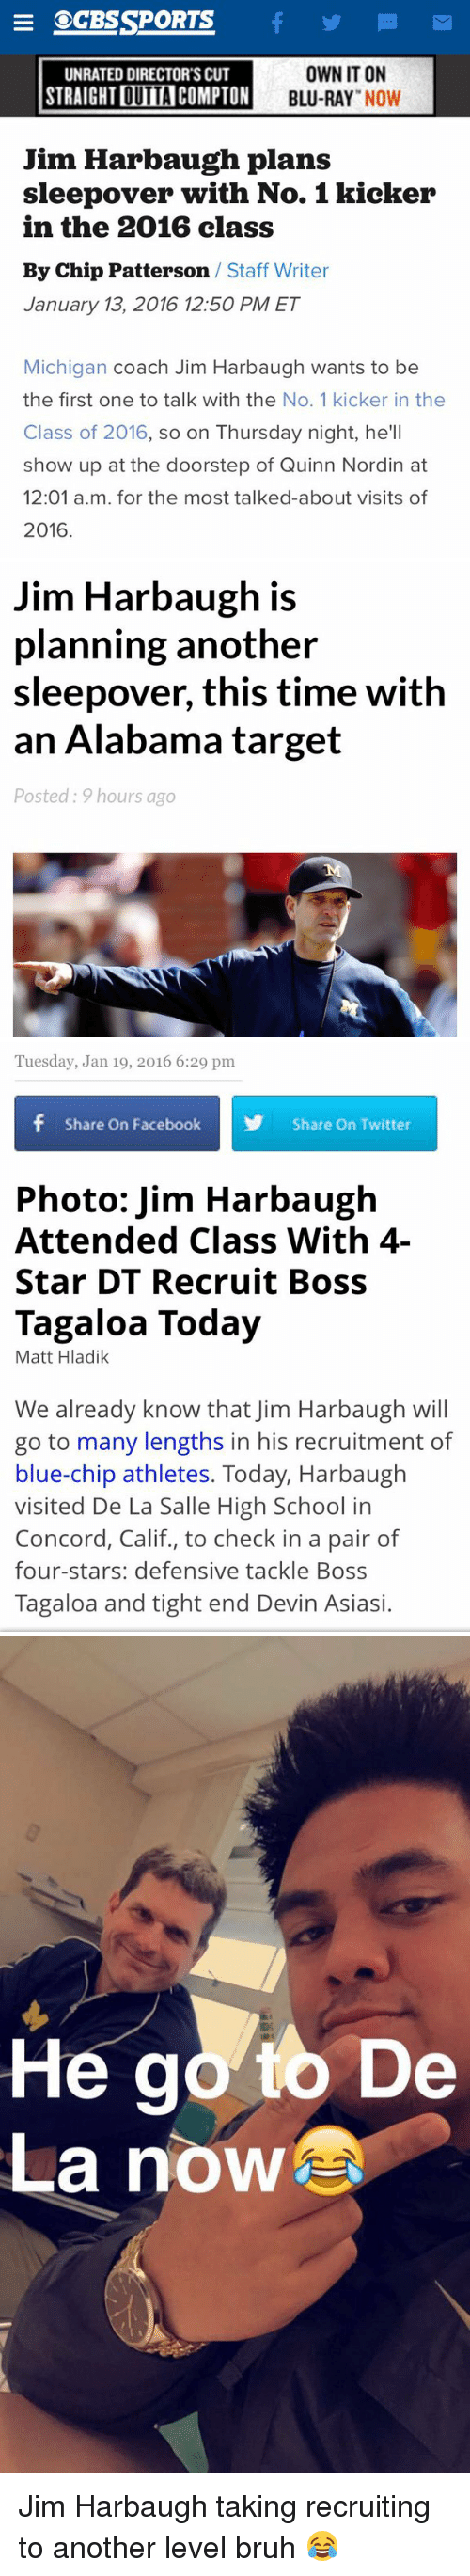 Jim Harbaugh: E SEGESSPORTS  f M  OWN IT ON  UNRATED DIRECTOR'S CUT  STRAIGHTDUTAICOMPTON  BLU-RAY  NOW  Jim Harbaugh plans  sleepover with No. 1 kicker  in the 2016 class  By Chip Patterson  Staff Writer  January 13, 2016 12:50 PM ET  Michigan coach Jim Harbaugh wants to be  the first one to talk with the No. 1 kicker in the  Class of 2016, so on Thursday night, he'll  show up at the doorstep of Quinn Nordin at  12:01 a.m. for the most talked-about visits of  2016   Jim Harbaugh is  planning another  sleepover, this time with  an Alabama target  Posted: 9 hours ago   Tuesday, Jan 19, 2016 6:29 pm  f Share on Facebook  N Share On Twitter  Photo: Jim Harbaugh  Attended Class With 4-  Star DT Recruit Boss  Tagaloa Today  Matt Hladik  We already know that Jim Harbaugh will  go to many lengths in his recruitment of  blue-chip athletes. Today, Harbaugh  visited De La Salle High School in  Concord, Calif., to check in a pair of  four-stars: defensive tackle Boss  Tagaloa and tight end Devin Asiasi.   He g0ytb De  La nowarn Jim Harbaugh taking recruiting to another level bruh 😂